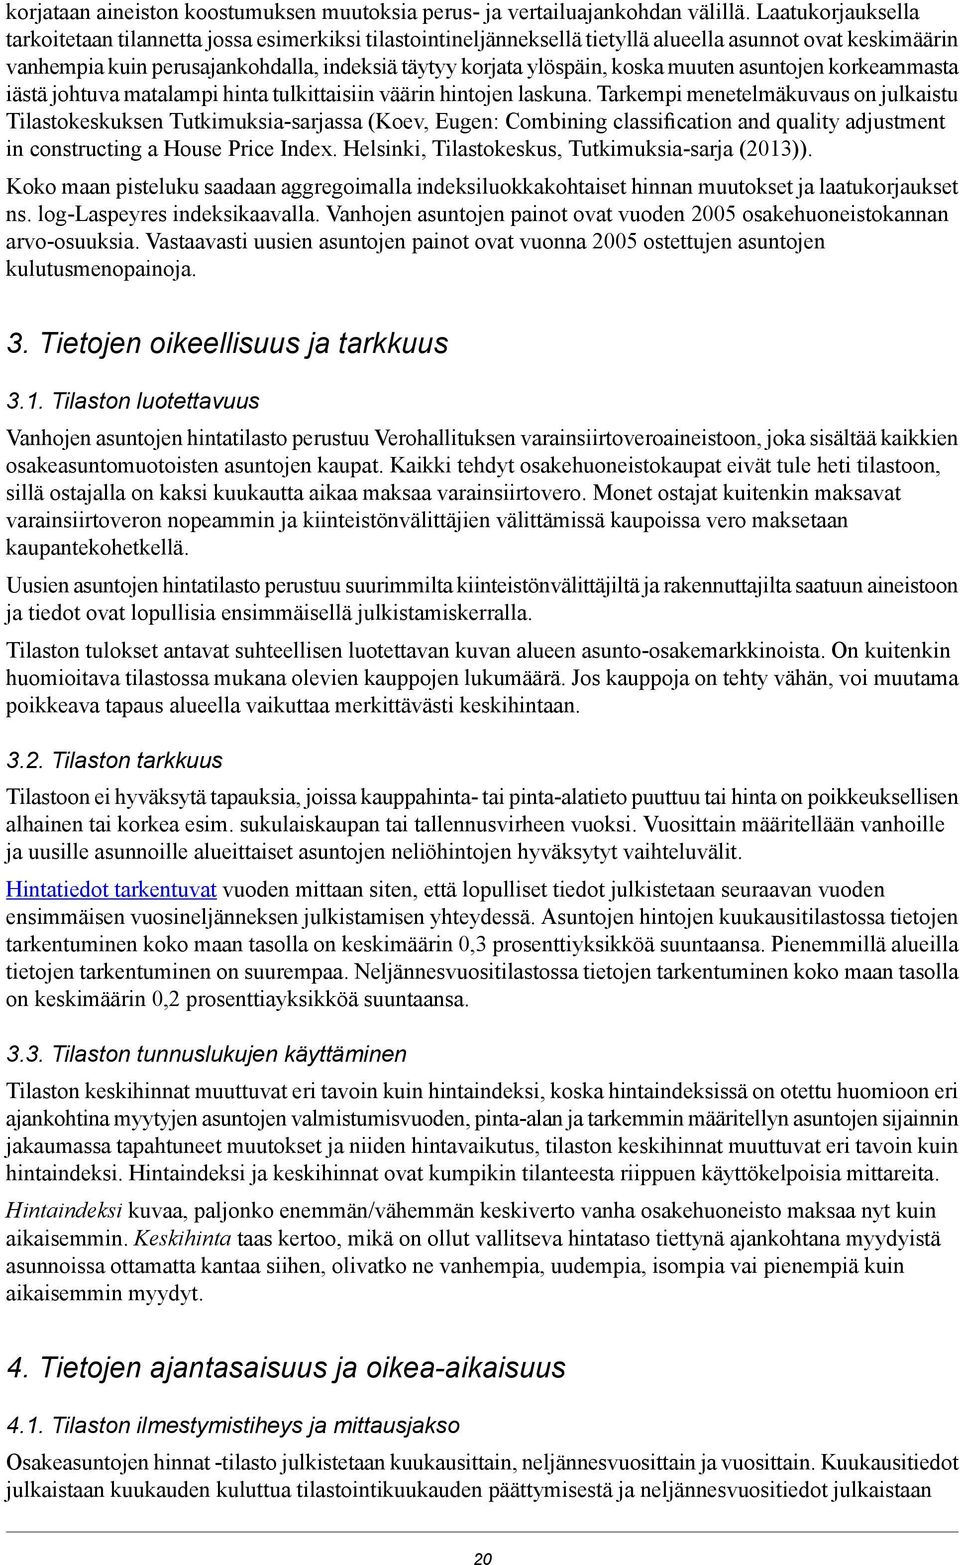 menetelmäkuvaus on julkaistu Tilastokeskuksen Tutkimuksia-sarjassa (Koev, Eugen: Combining classification and quality adjustment in constructing a House Price Index Helsinki, Tilastokeskus,